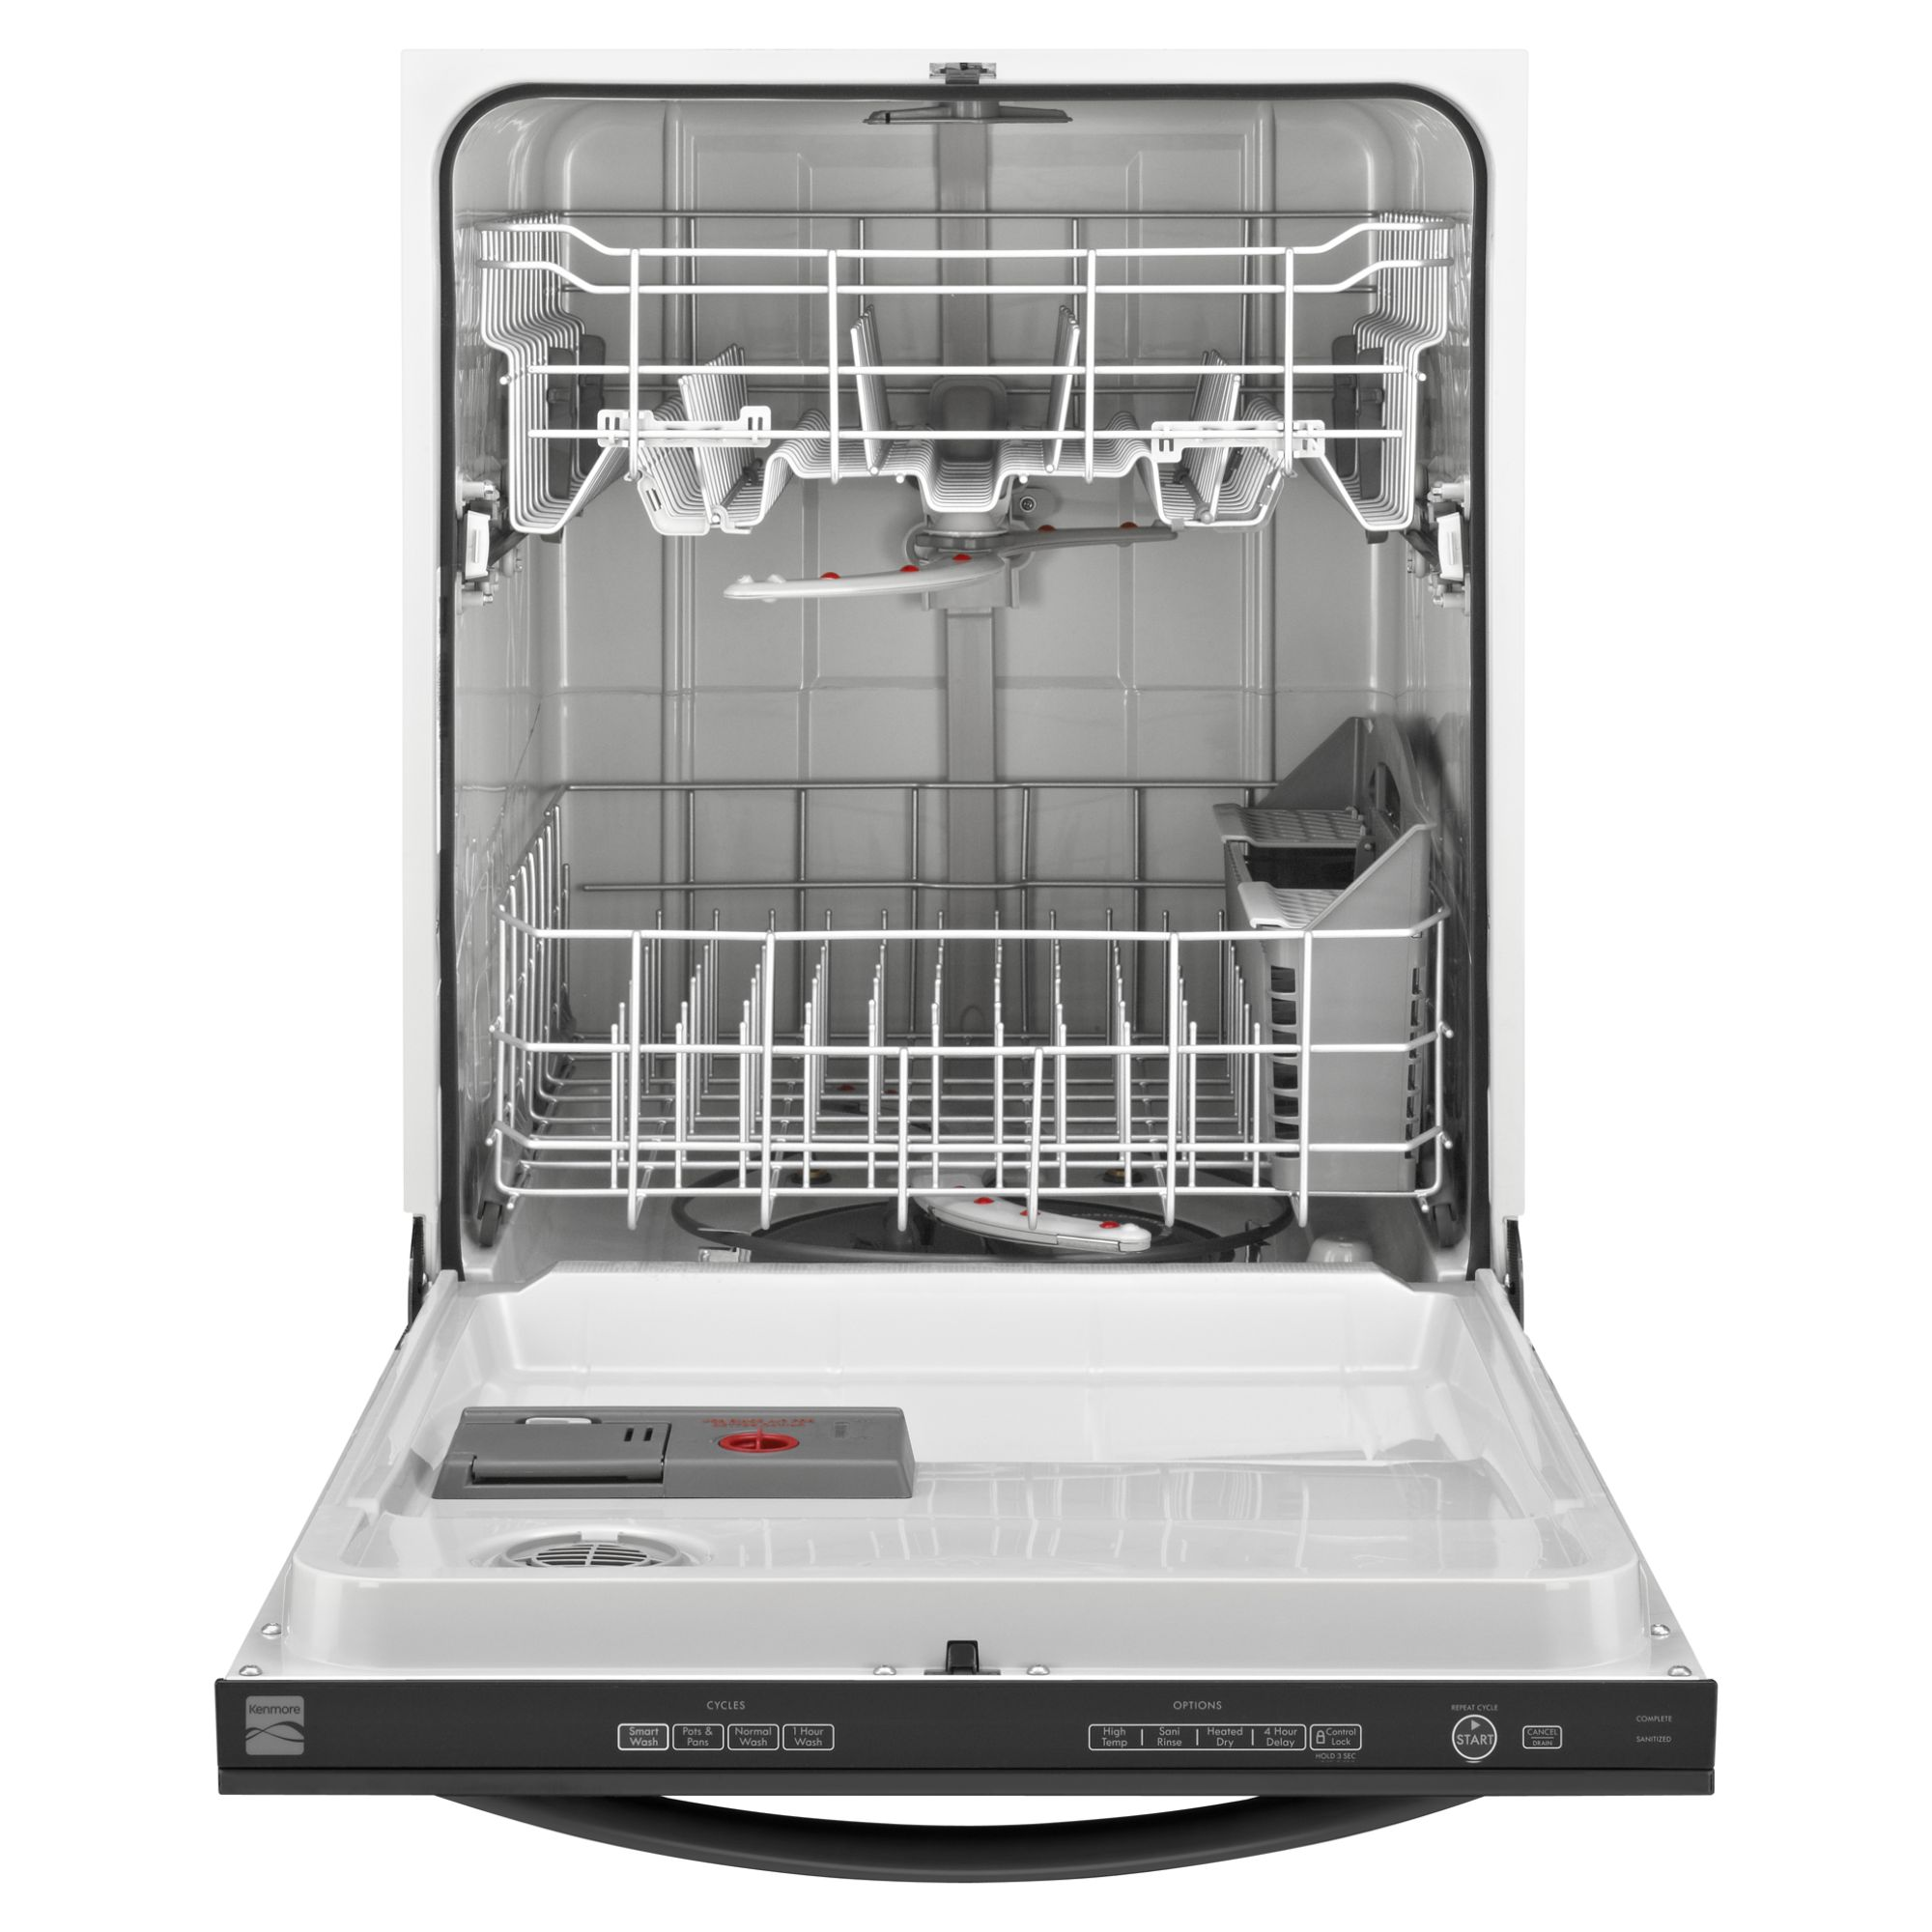 "Kenmore 24"" Built-In Dishwasher - Black"